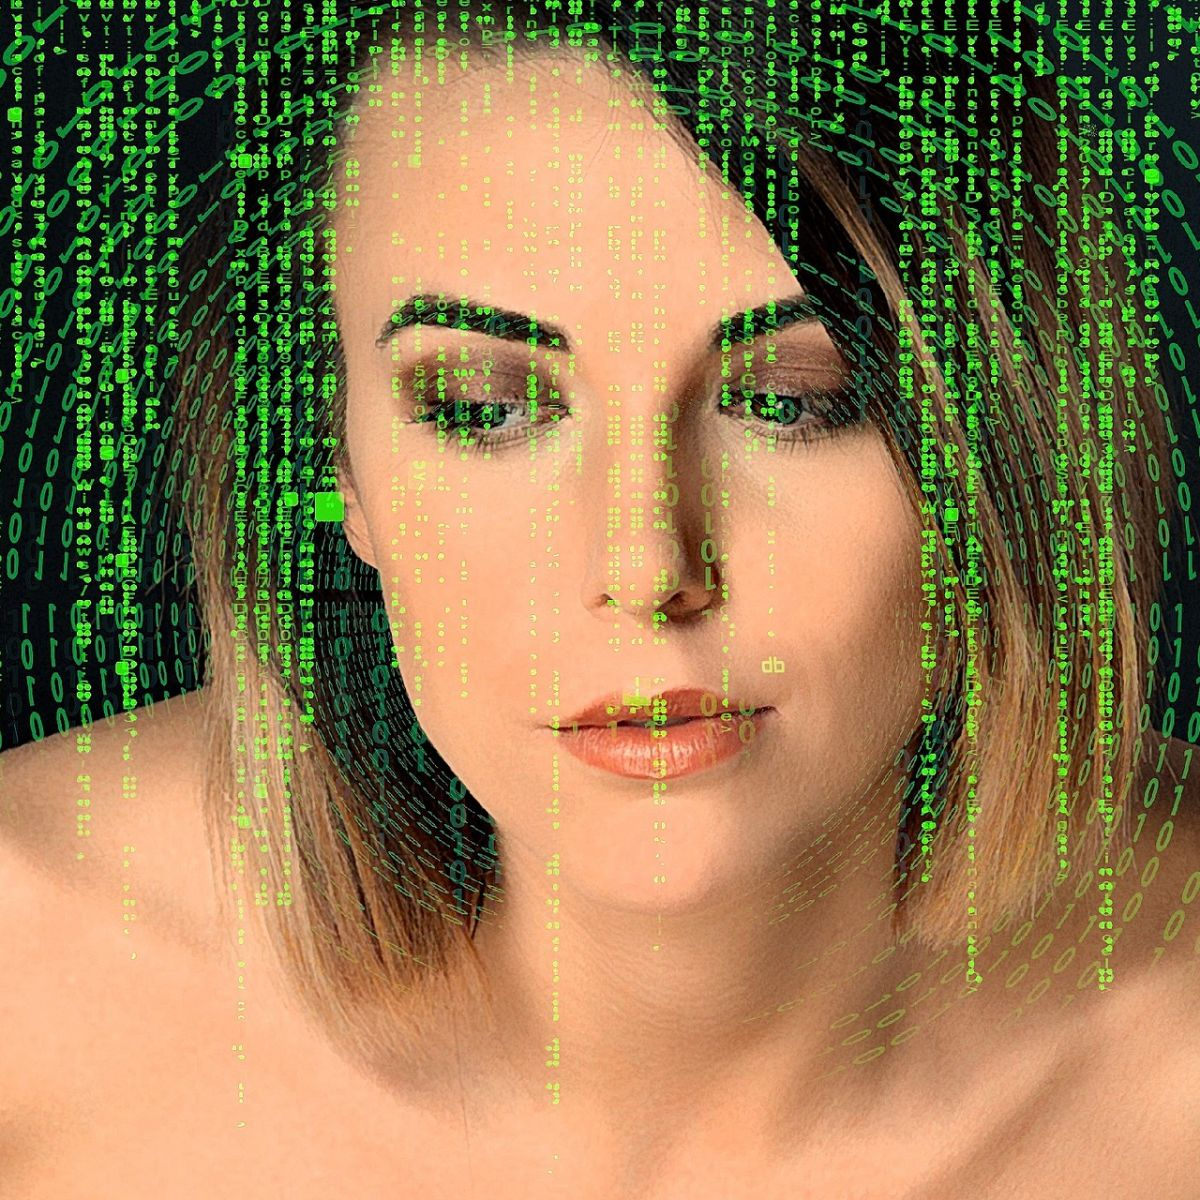 Blonde nameless woman in front of green matrix numbers